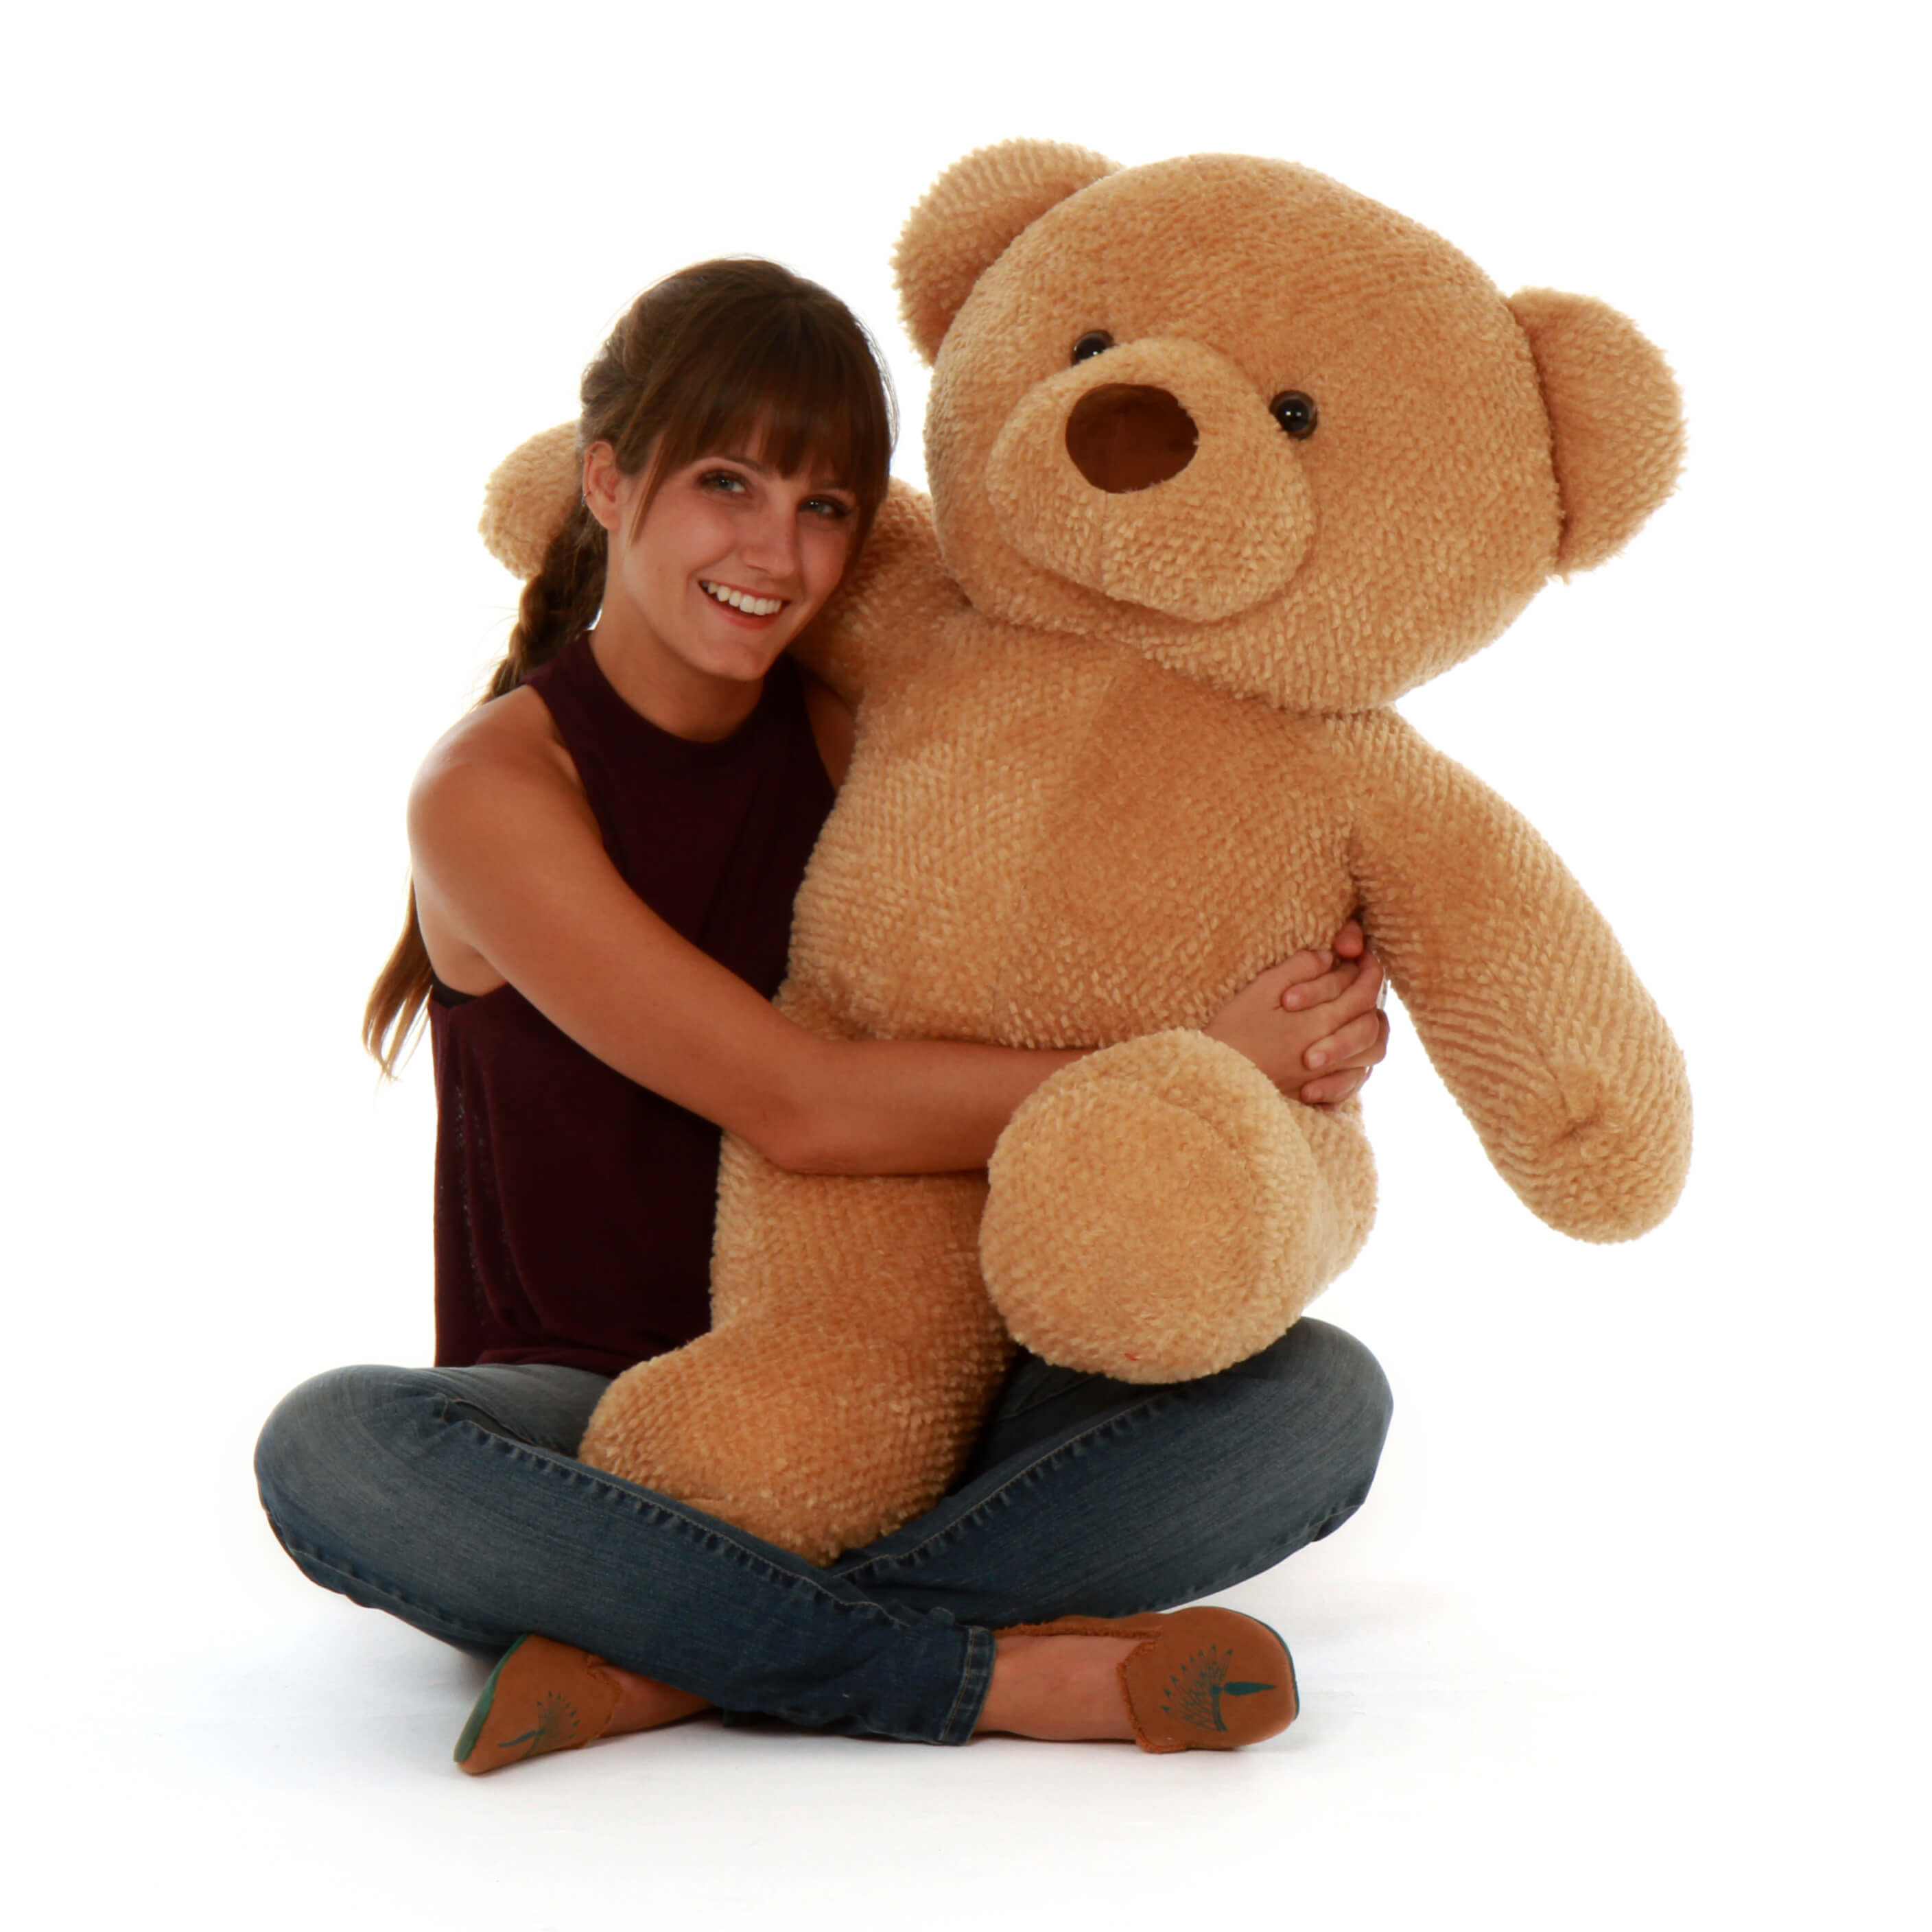 giant-teddy-cutie-chubs-life-size-amber-teddy-bear-38in-1.jpg